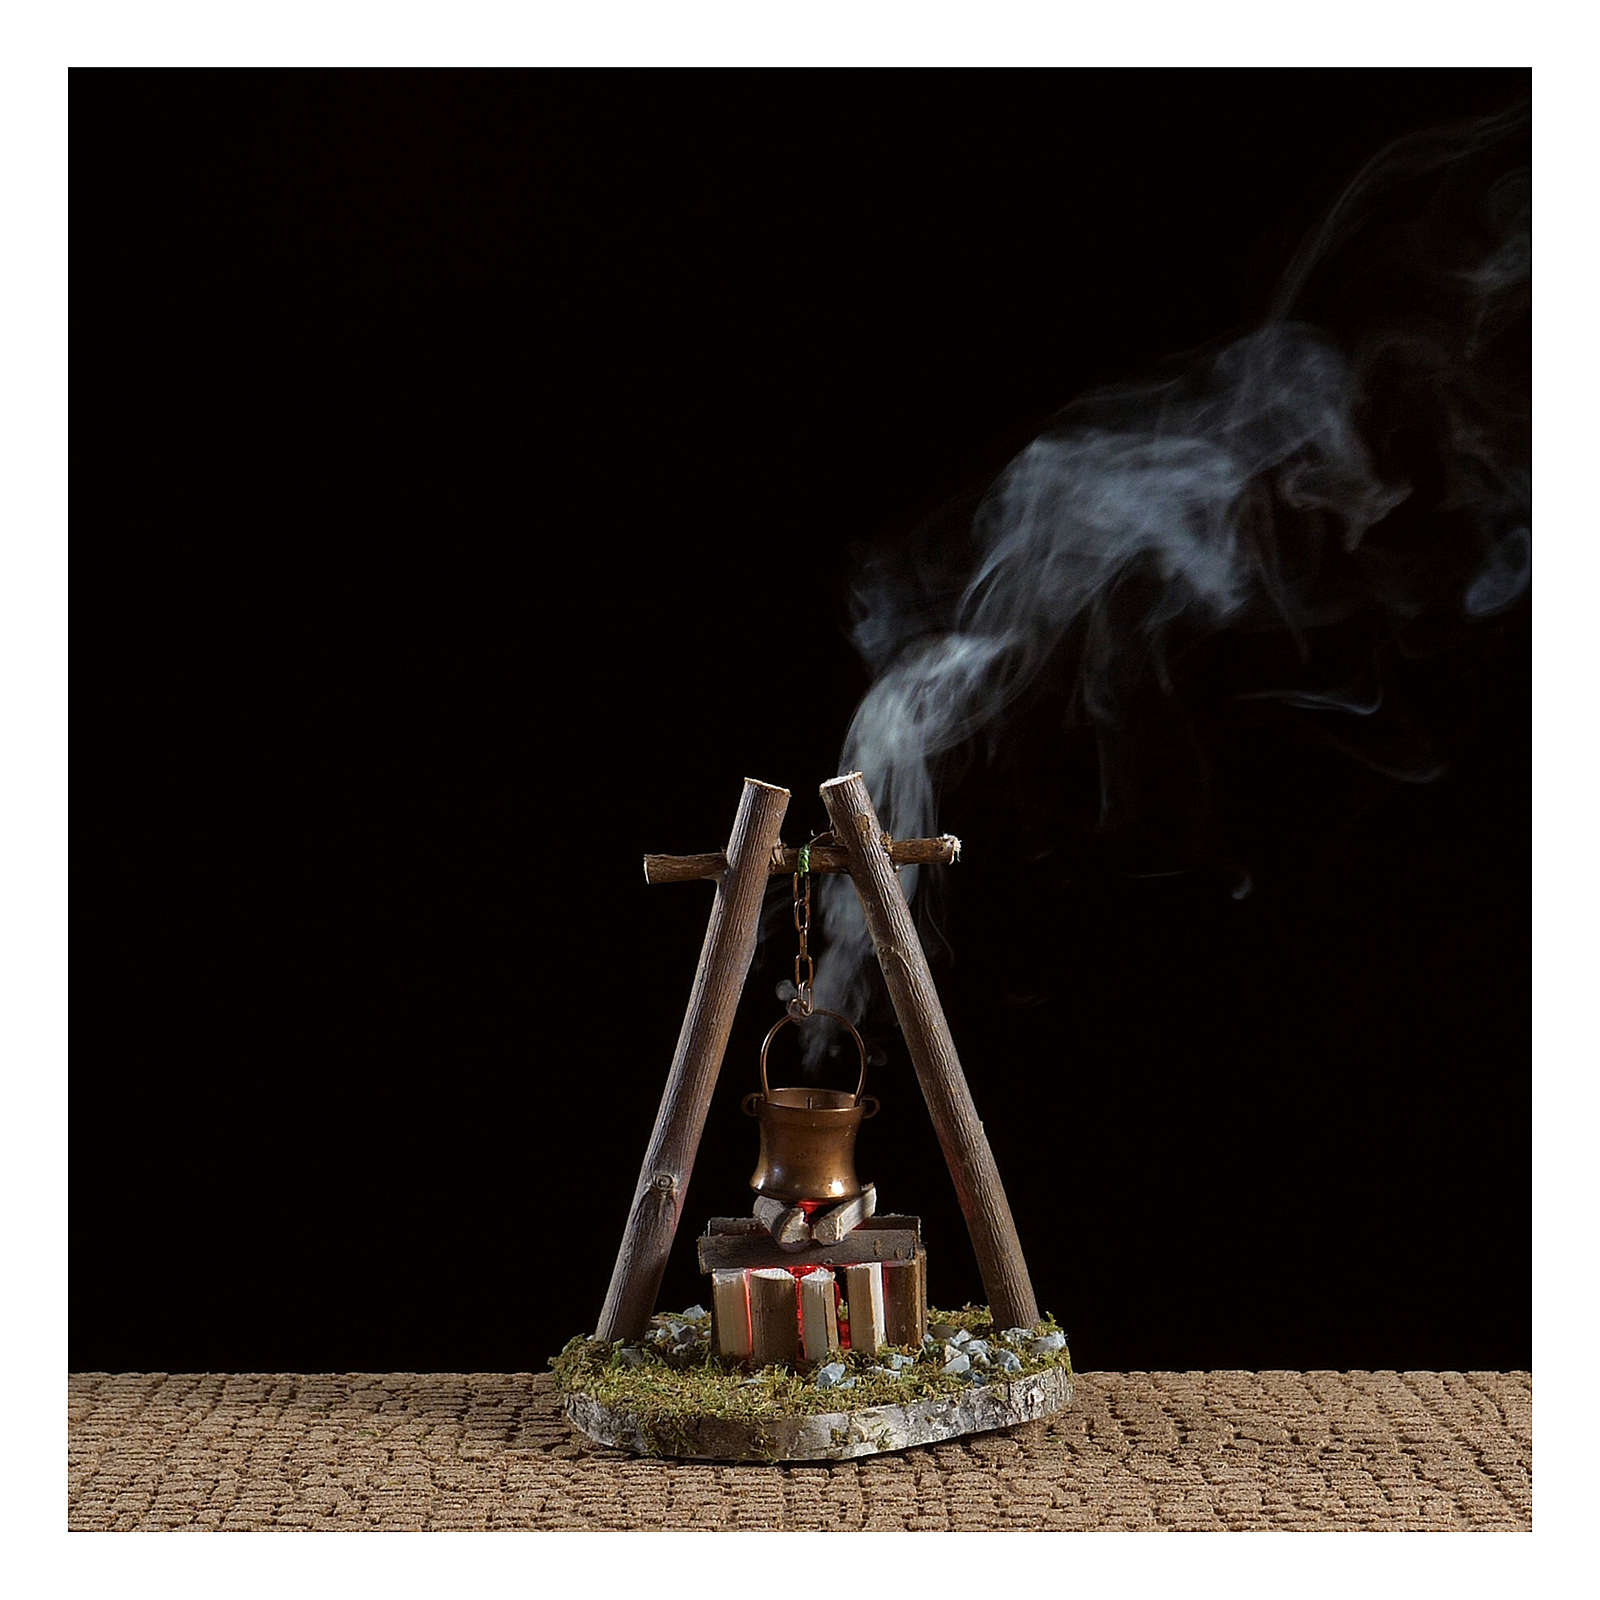 Bivouac setting with pot on wooden base 4